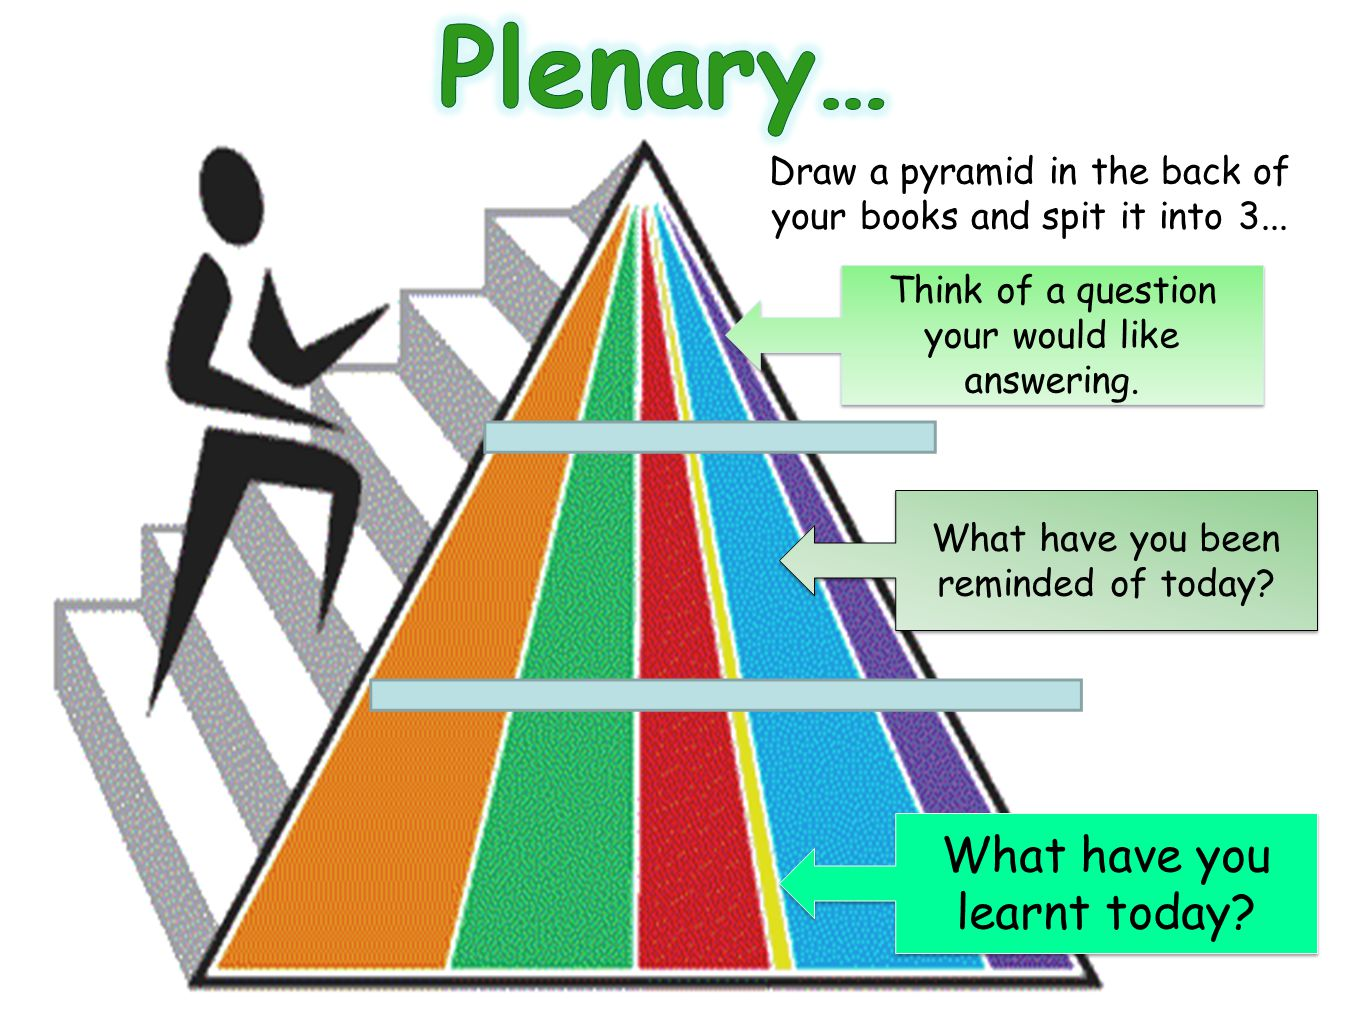 Plenary… What have you learnt today